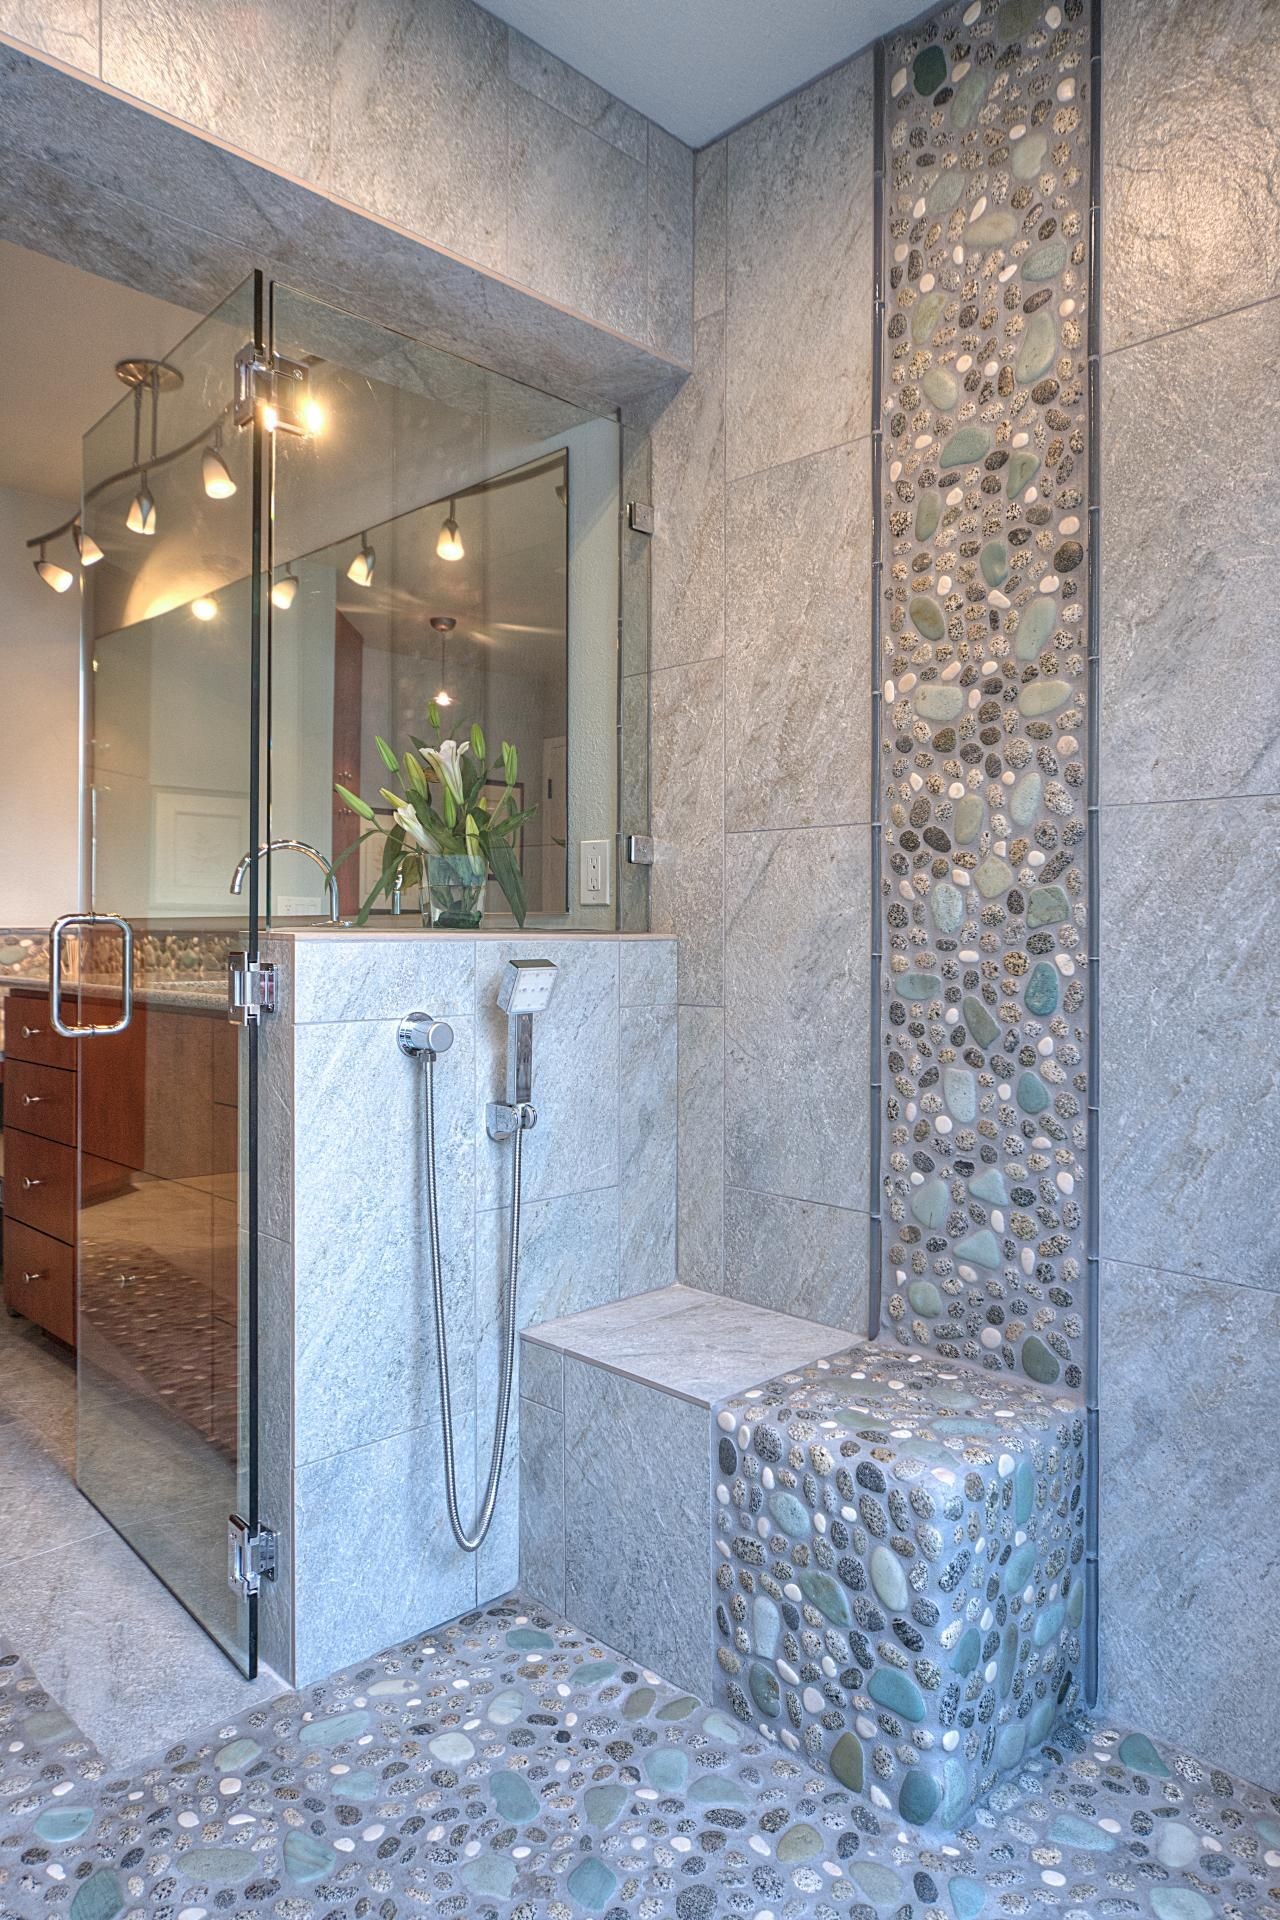 2015 nkba peoples pick best bathroom - Glass Tile Living Room 2015